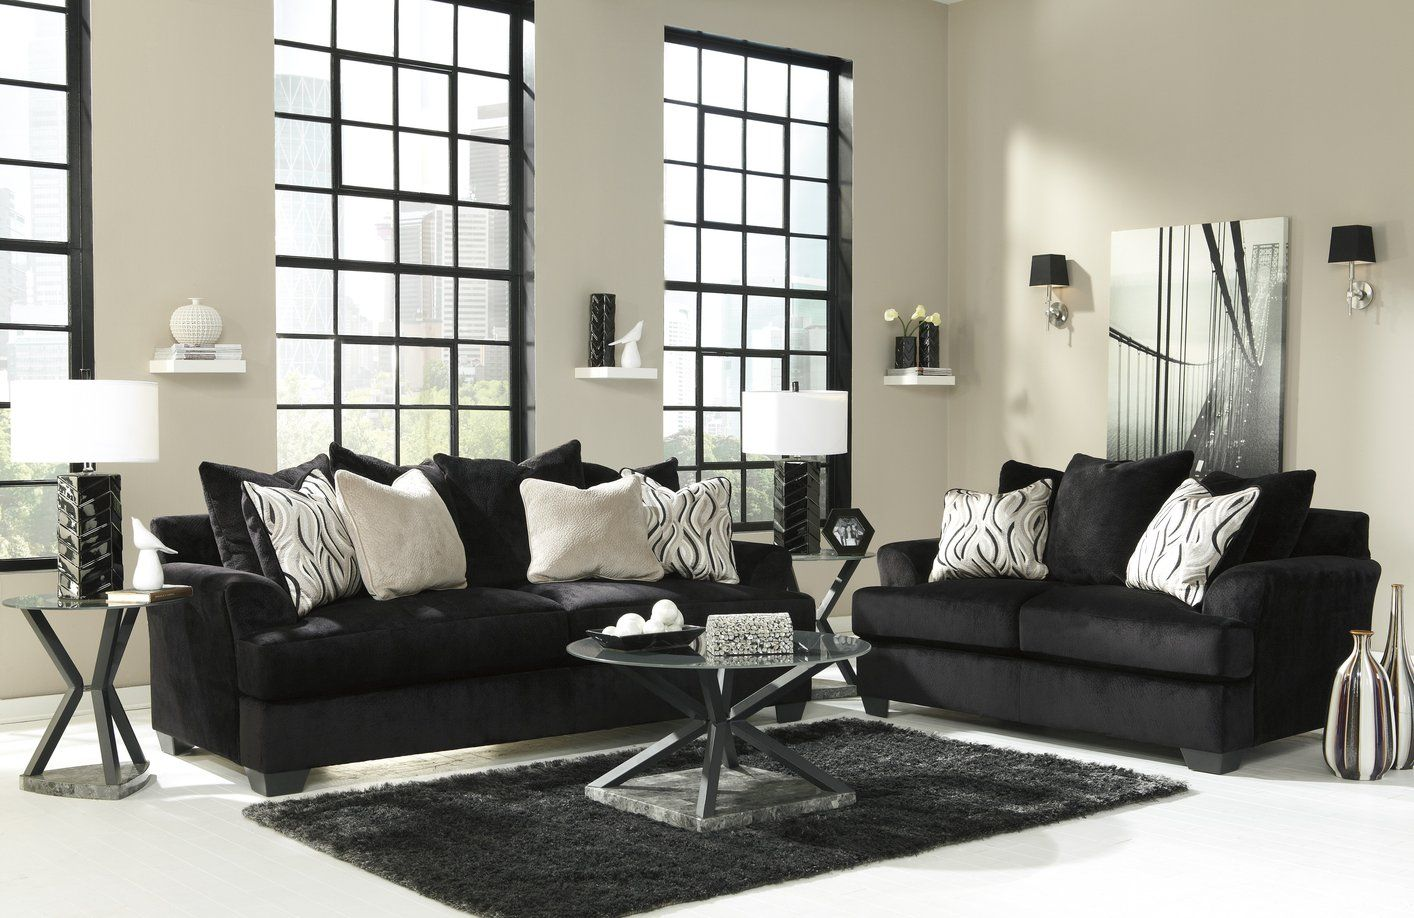 Add Style And Beauty To Your Living Area With A Black Fabric Sofa It Is